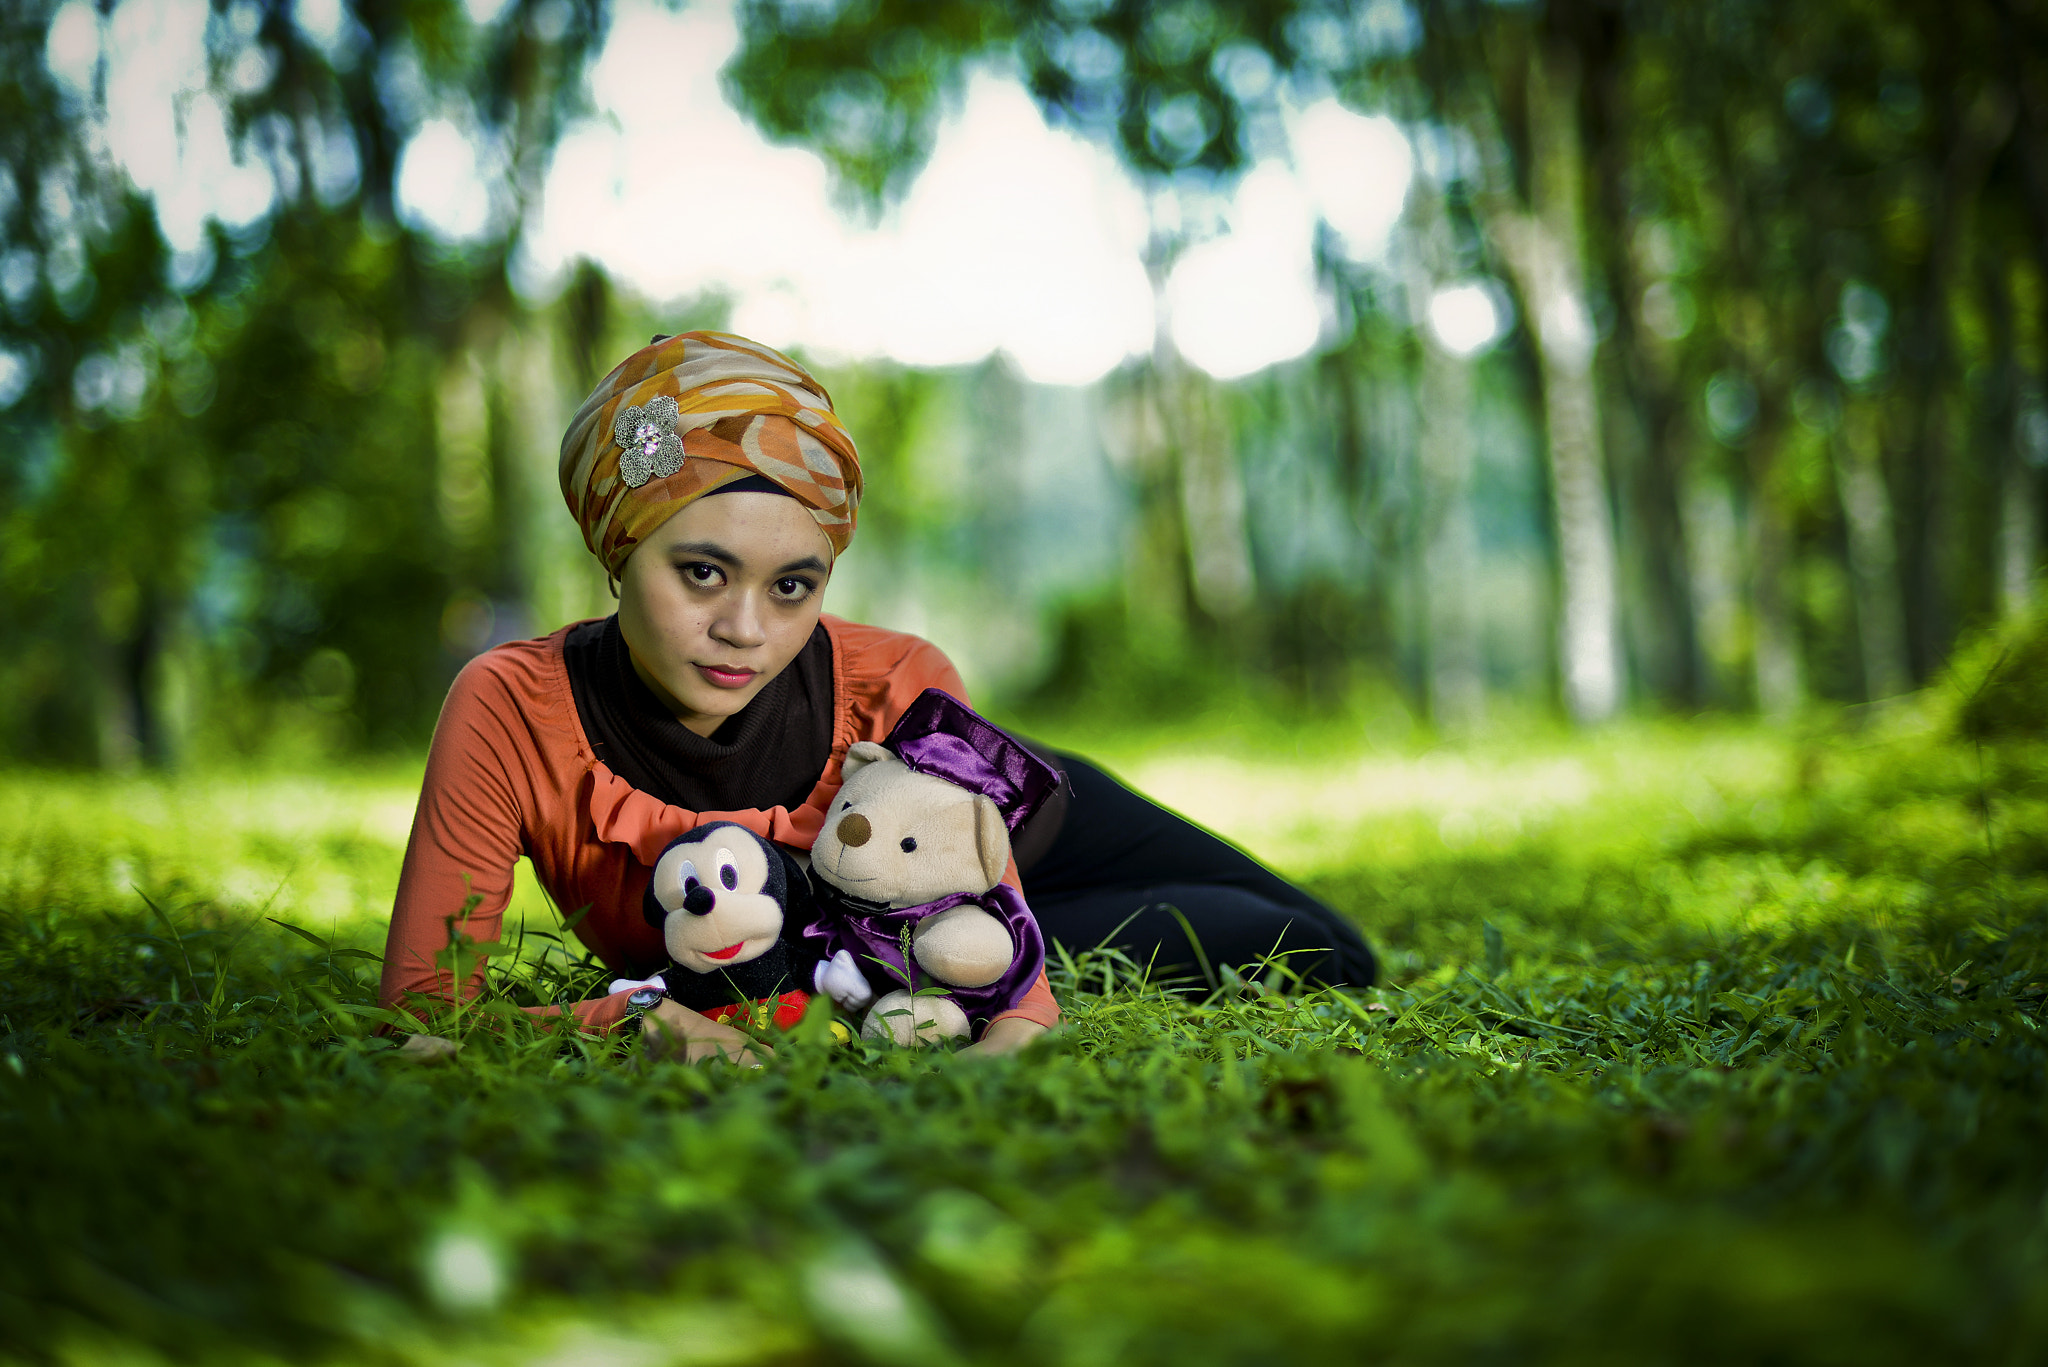 Photograph My Dream by Azlan Mohamad on 500px